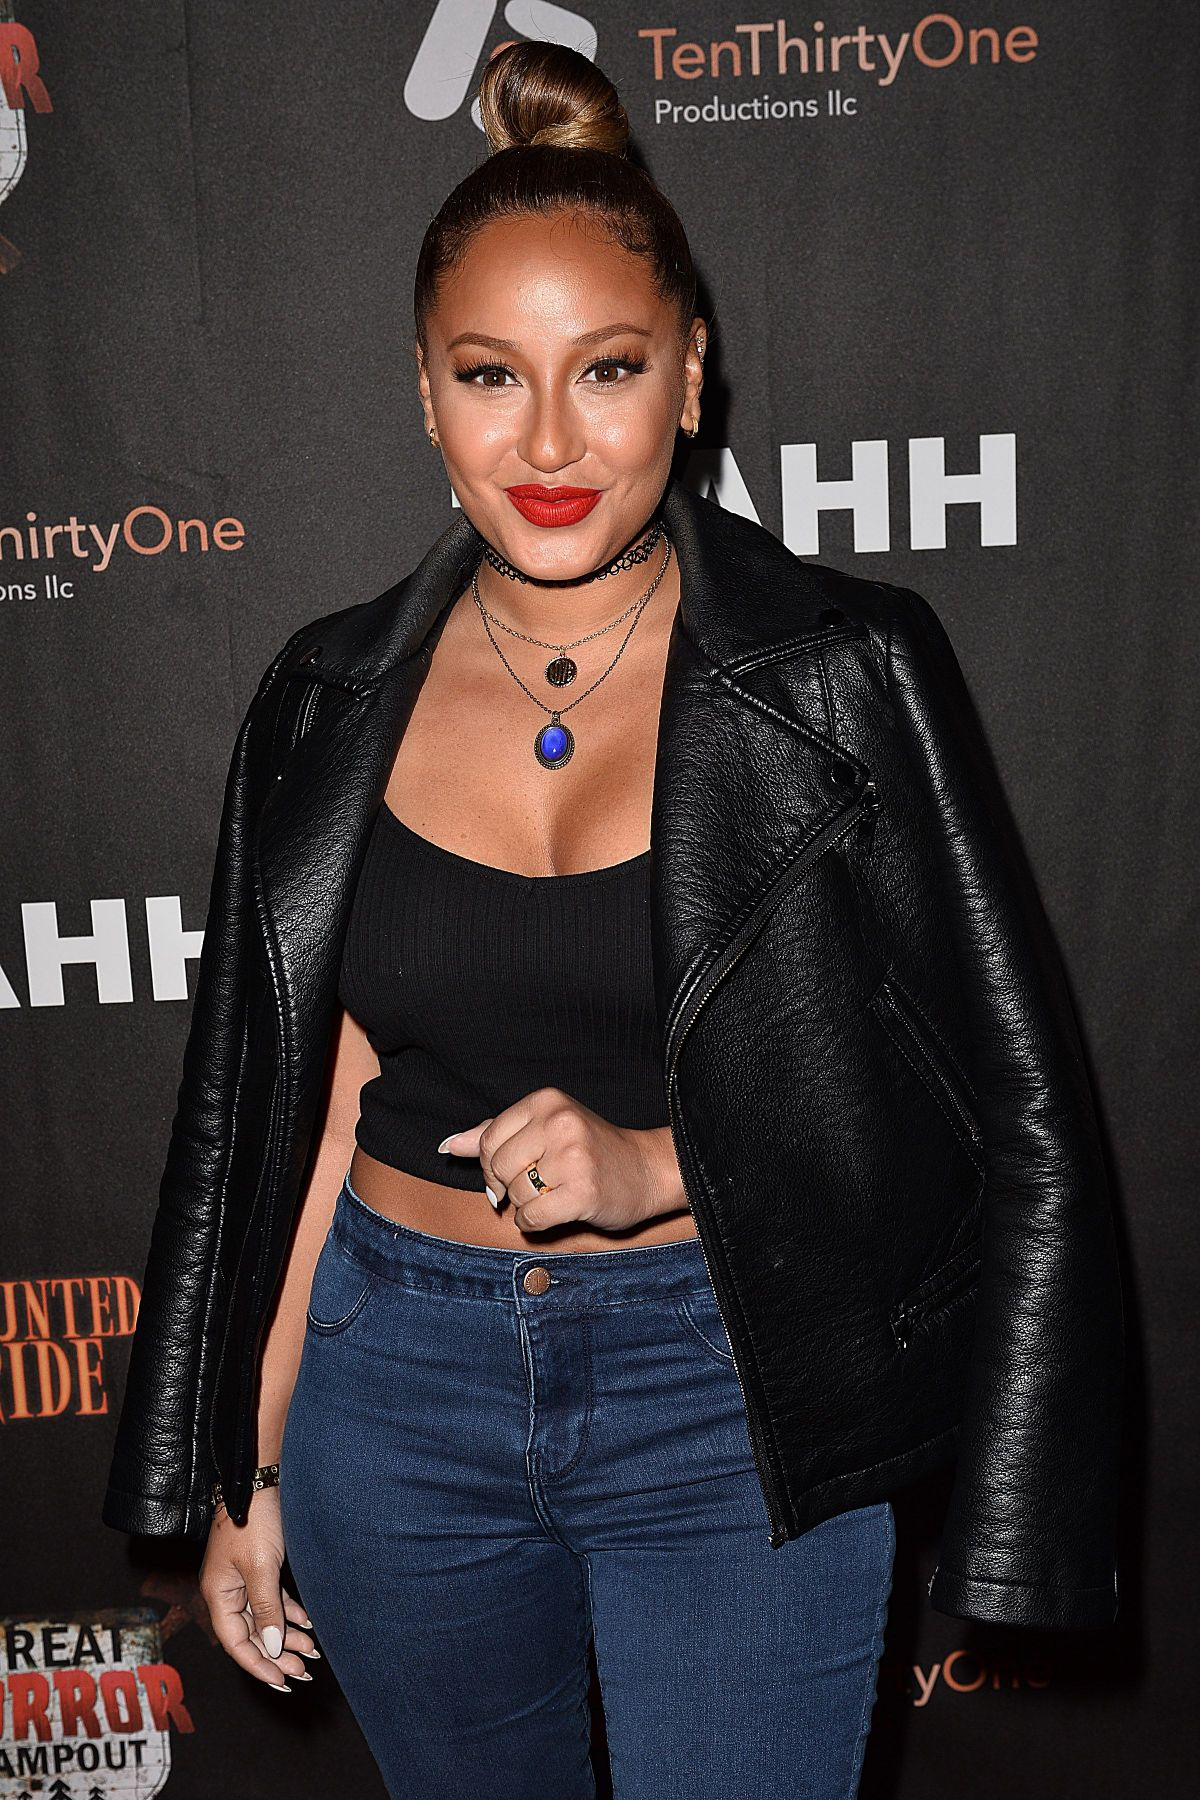 ADRIENNE BAILON at Los Angeles Haunted Hayride Black Carpet Premiere Night in Los Angeles 10/04/2015